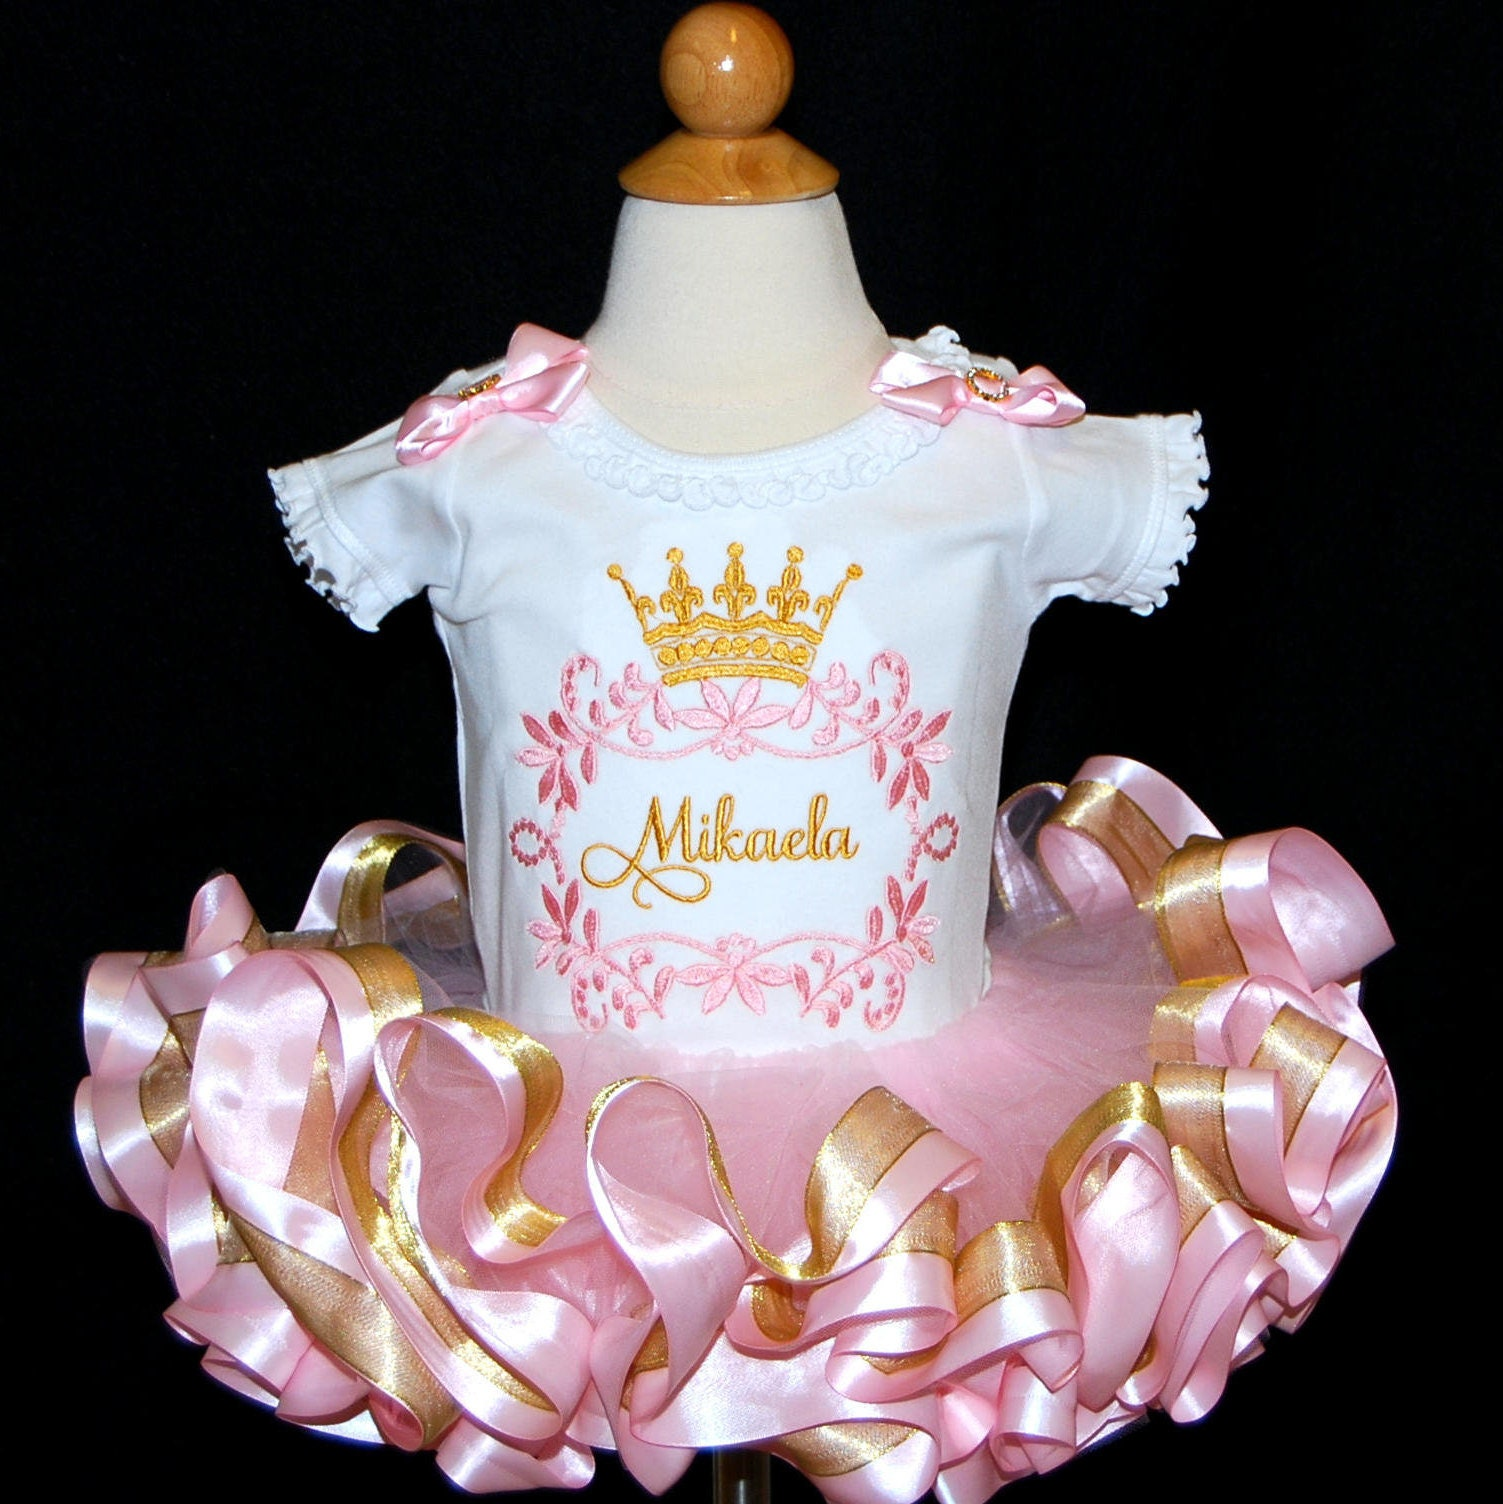 pink and gold birthday outfit princess birthday tutu outfit baby girl birthday dress tutu dress pink and gold 1st birthday outfit bloomers